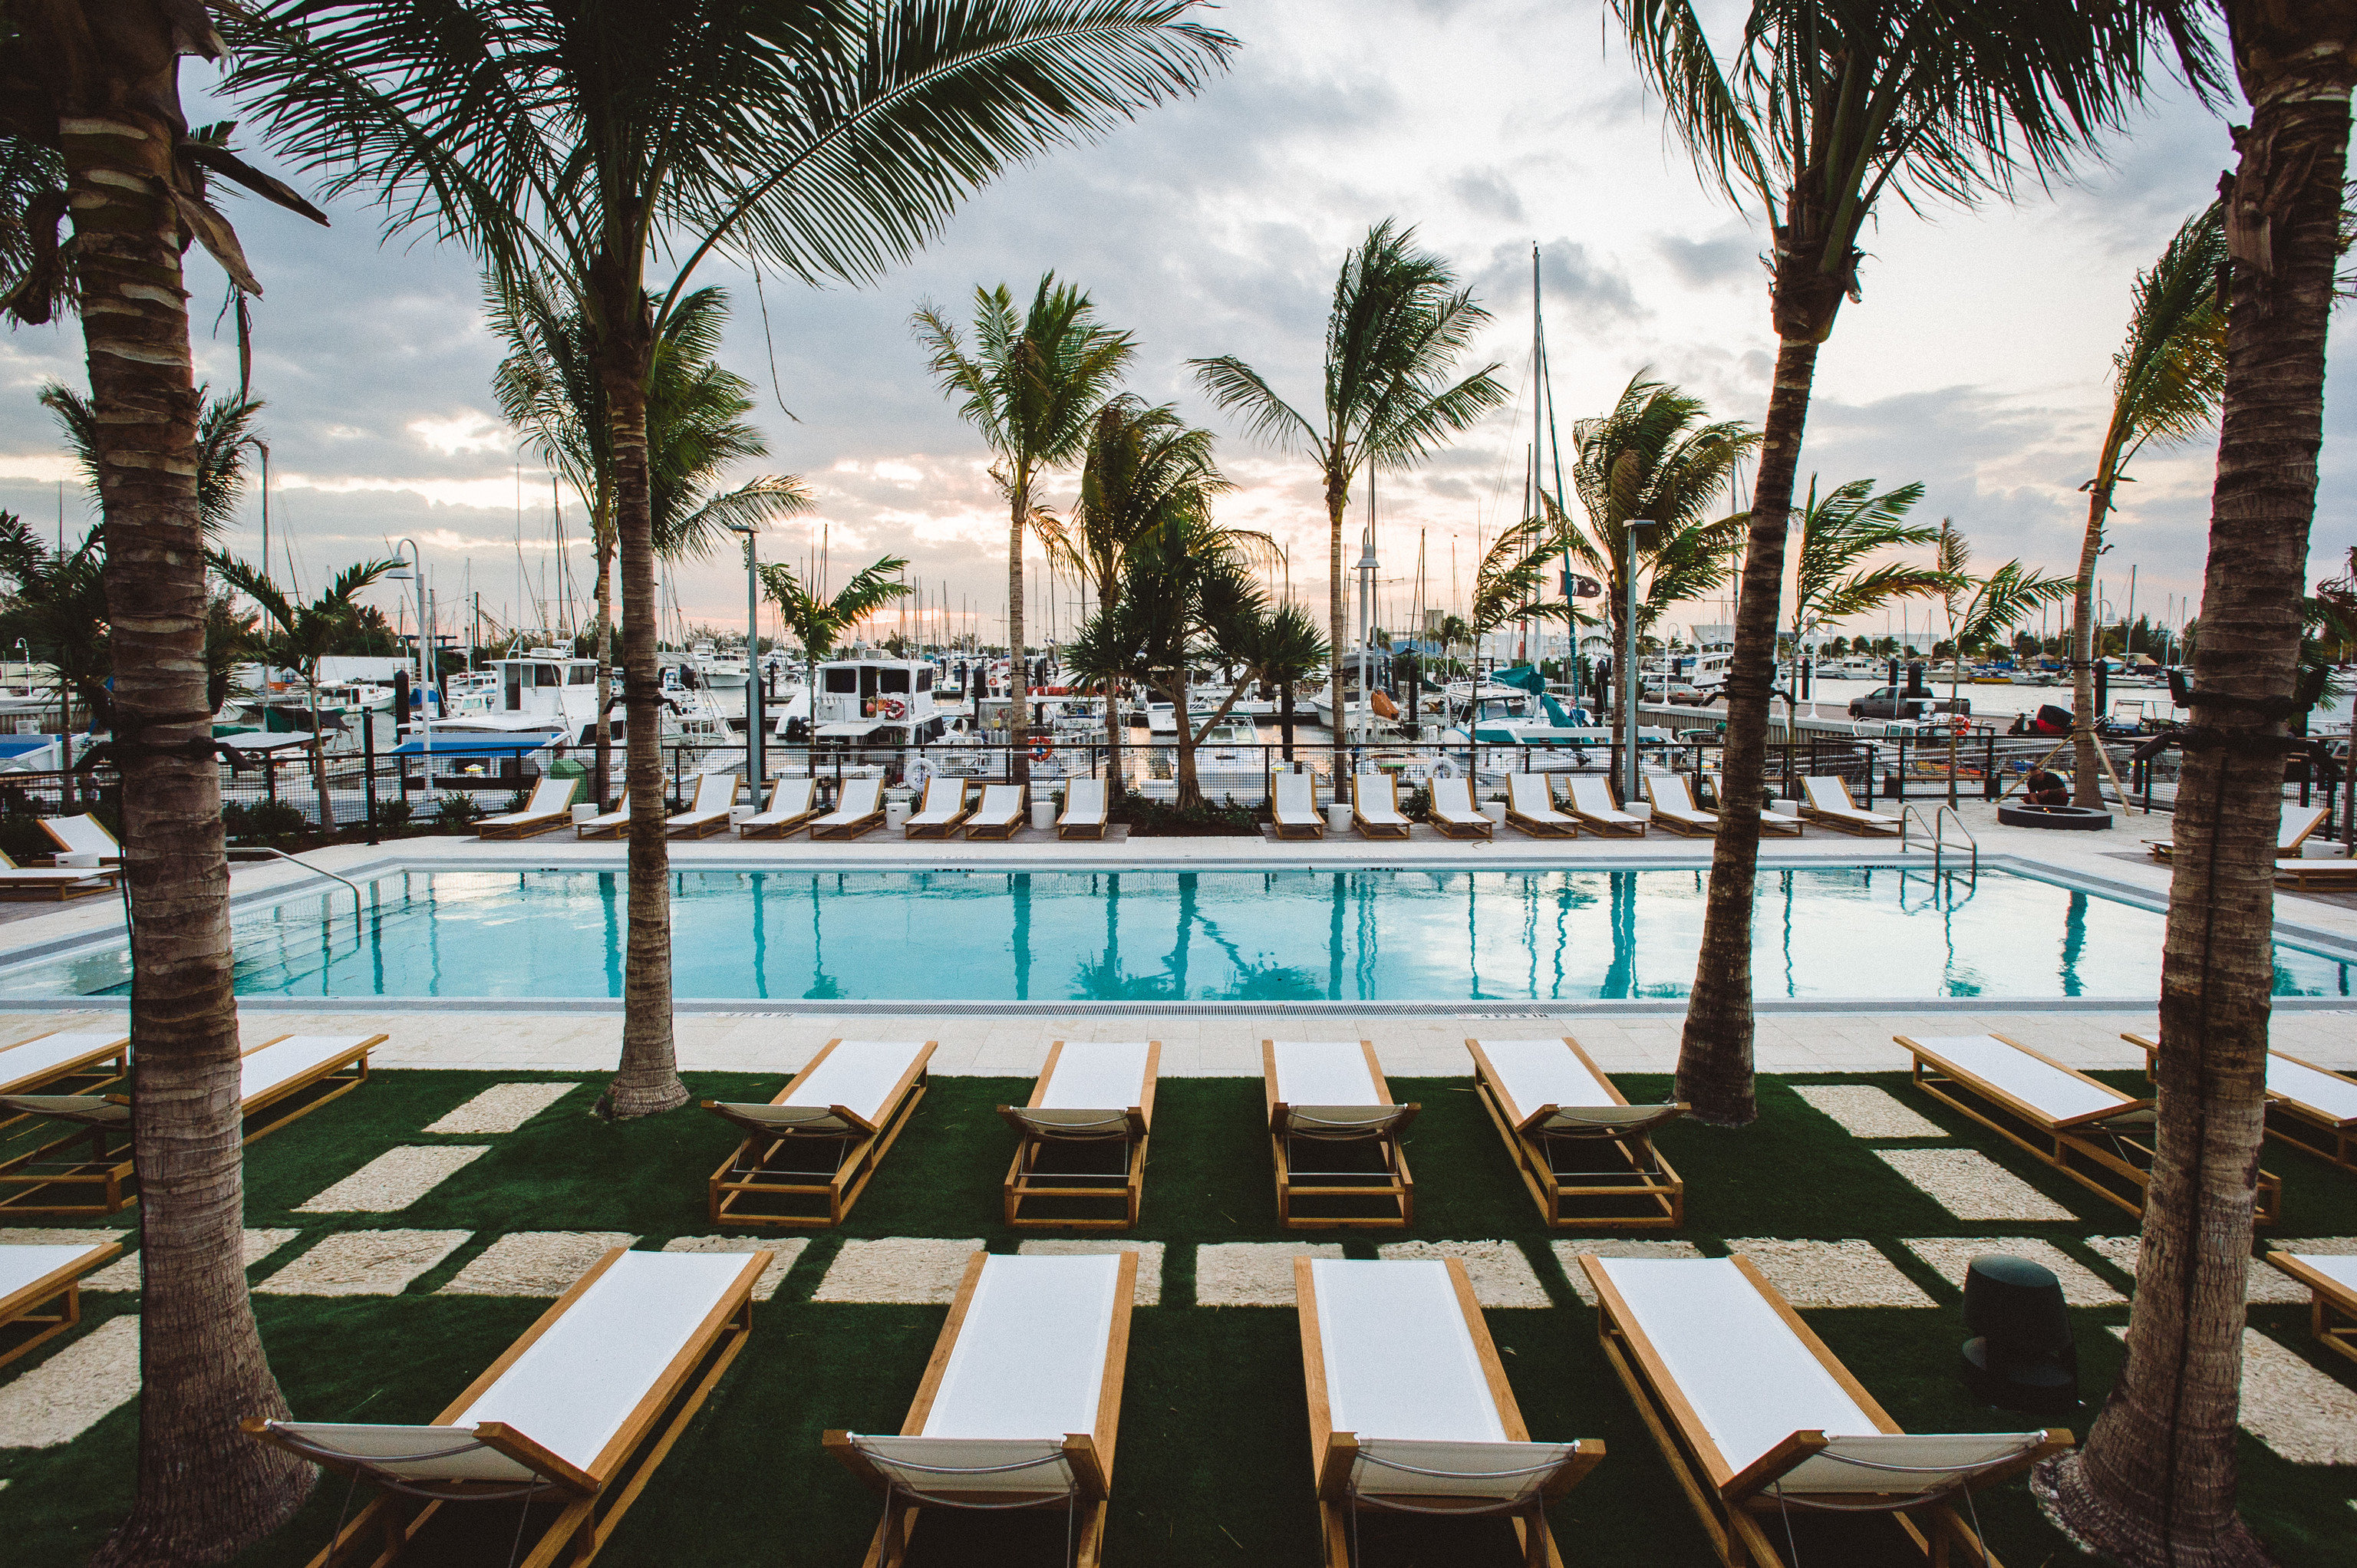 Florida Hotels Miami Romance Trip Ideas Weekend Getaways tree outdoor sky palm Resort water swimming pool palm tree arecales leisure plant Pool vacation hotel resort town tourism condominium recreation lined area shade furniture surrounded